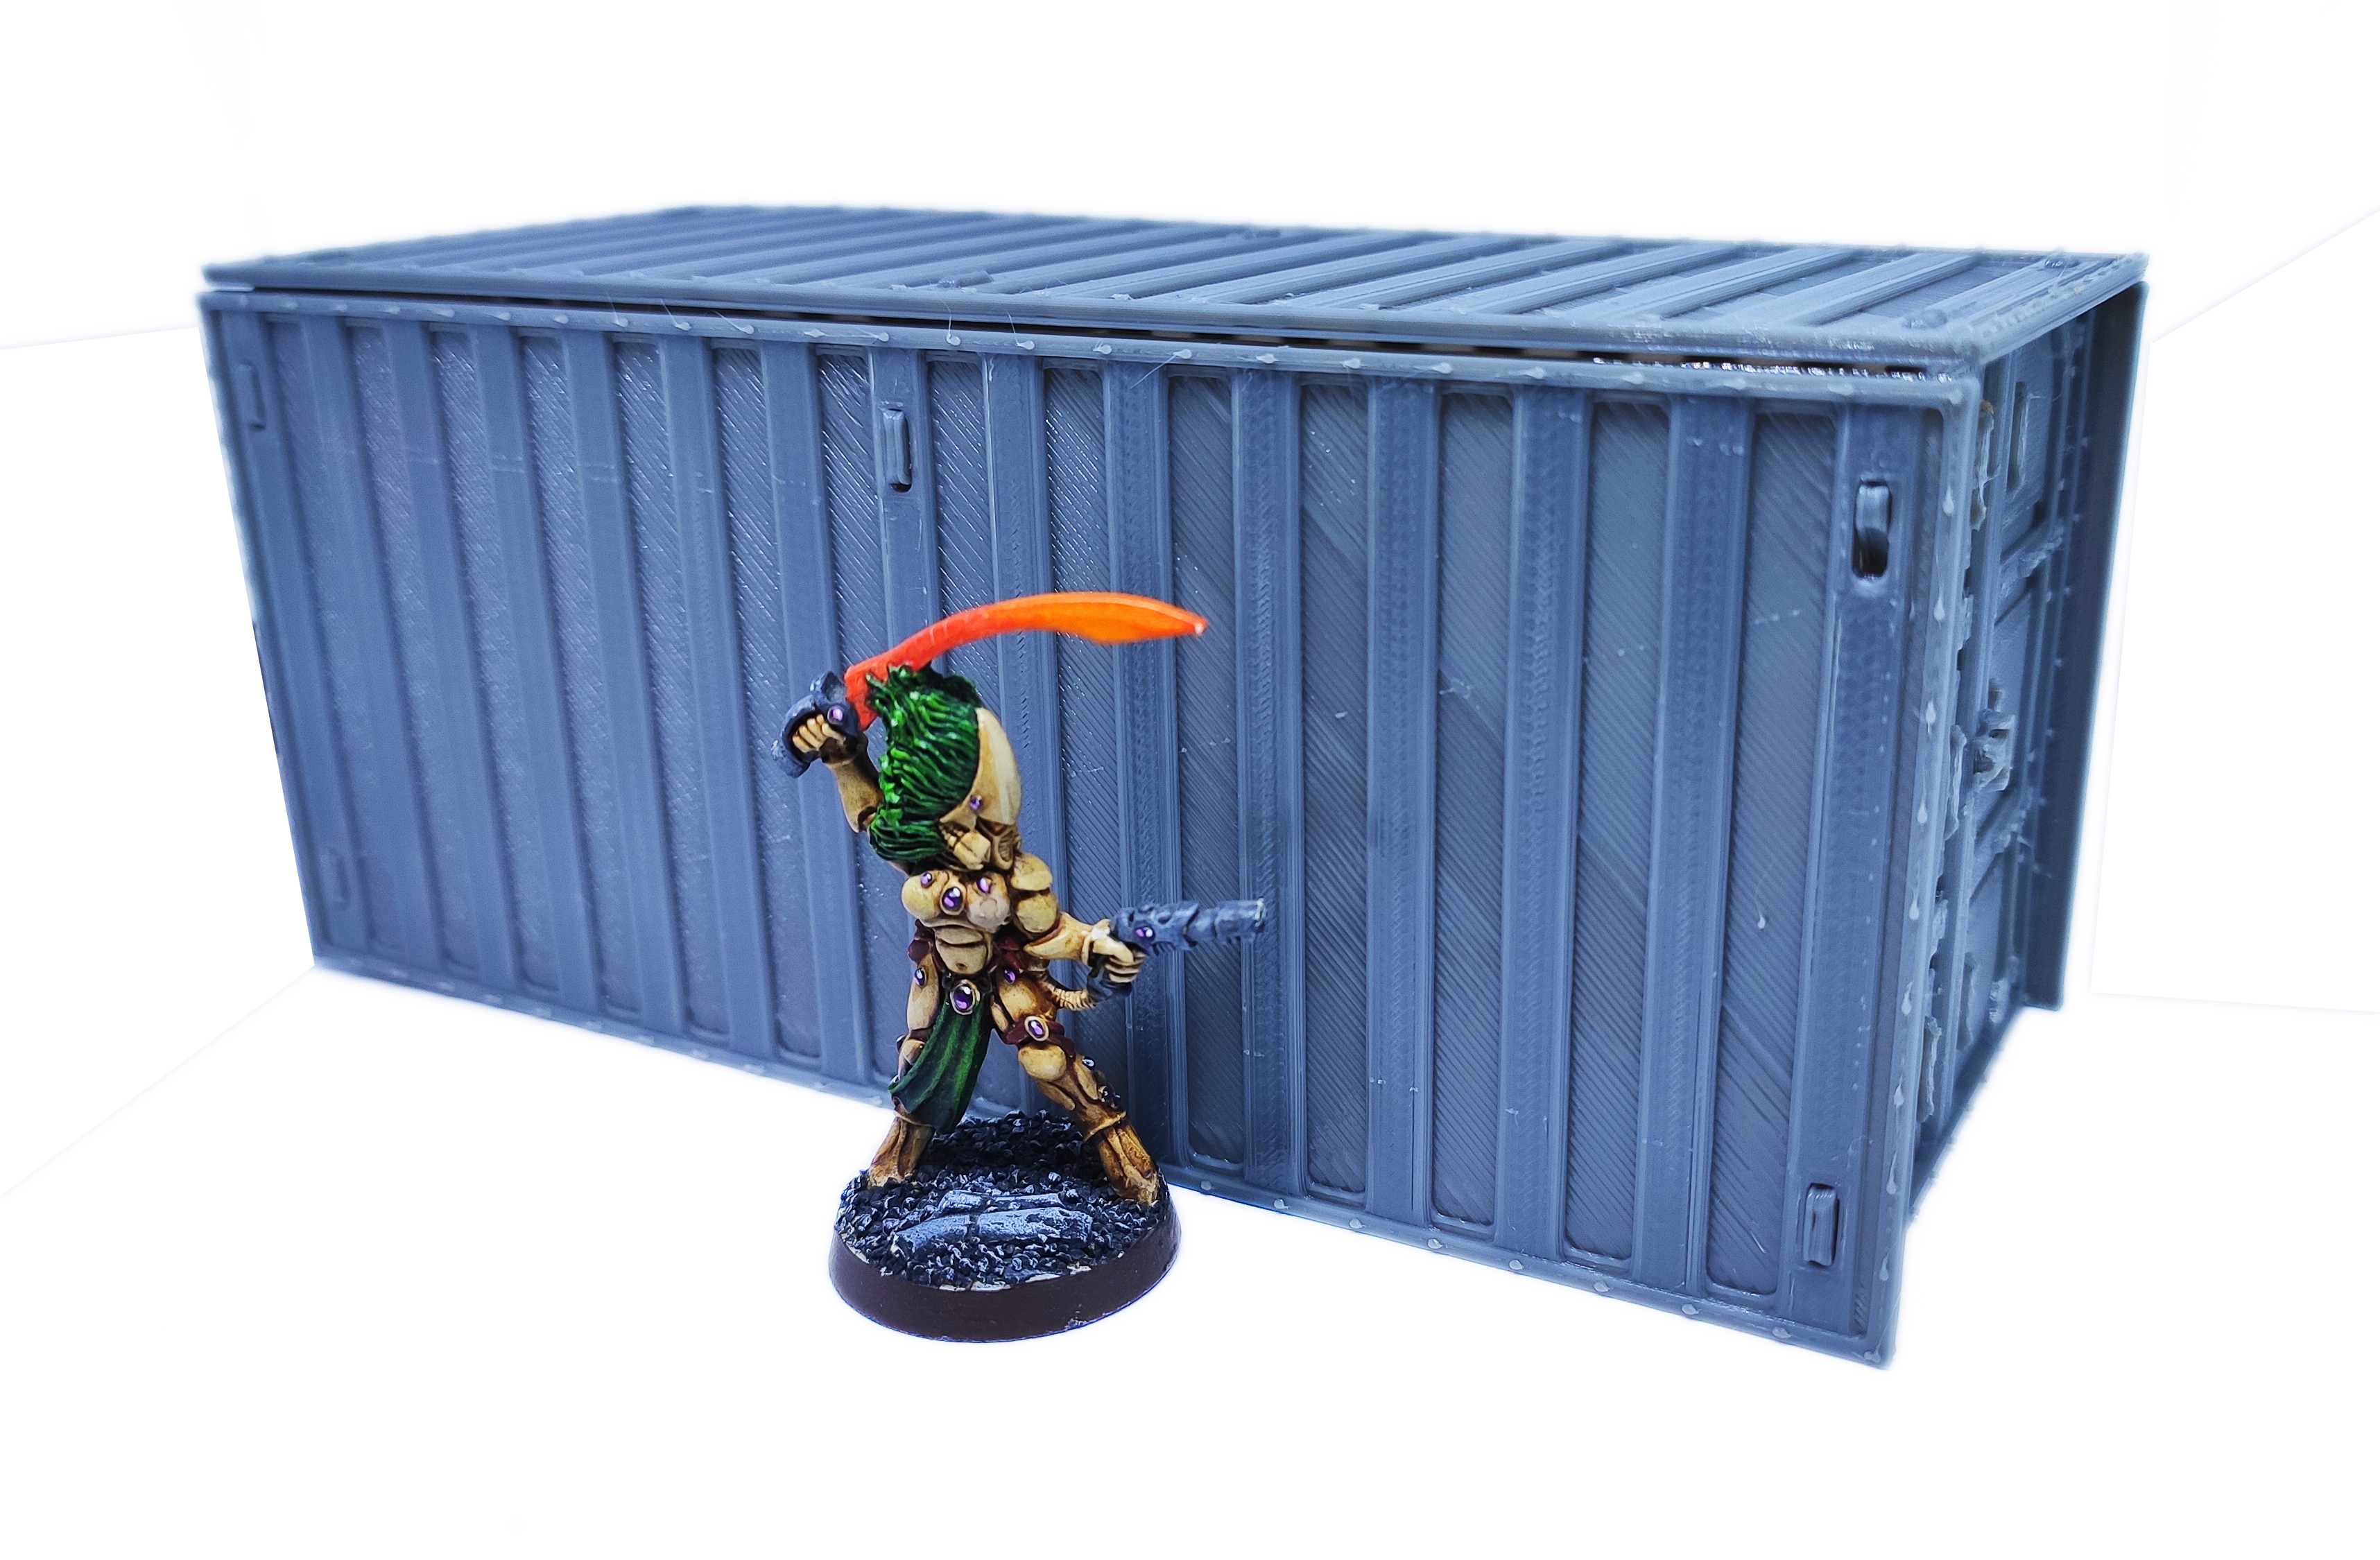 IMG_20200918_073534.jpg Download free STL file Containers for wargame terrain 6.25x6.25x15cm • Template to 3D print, Alario